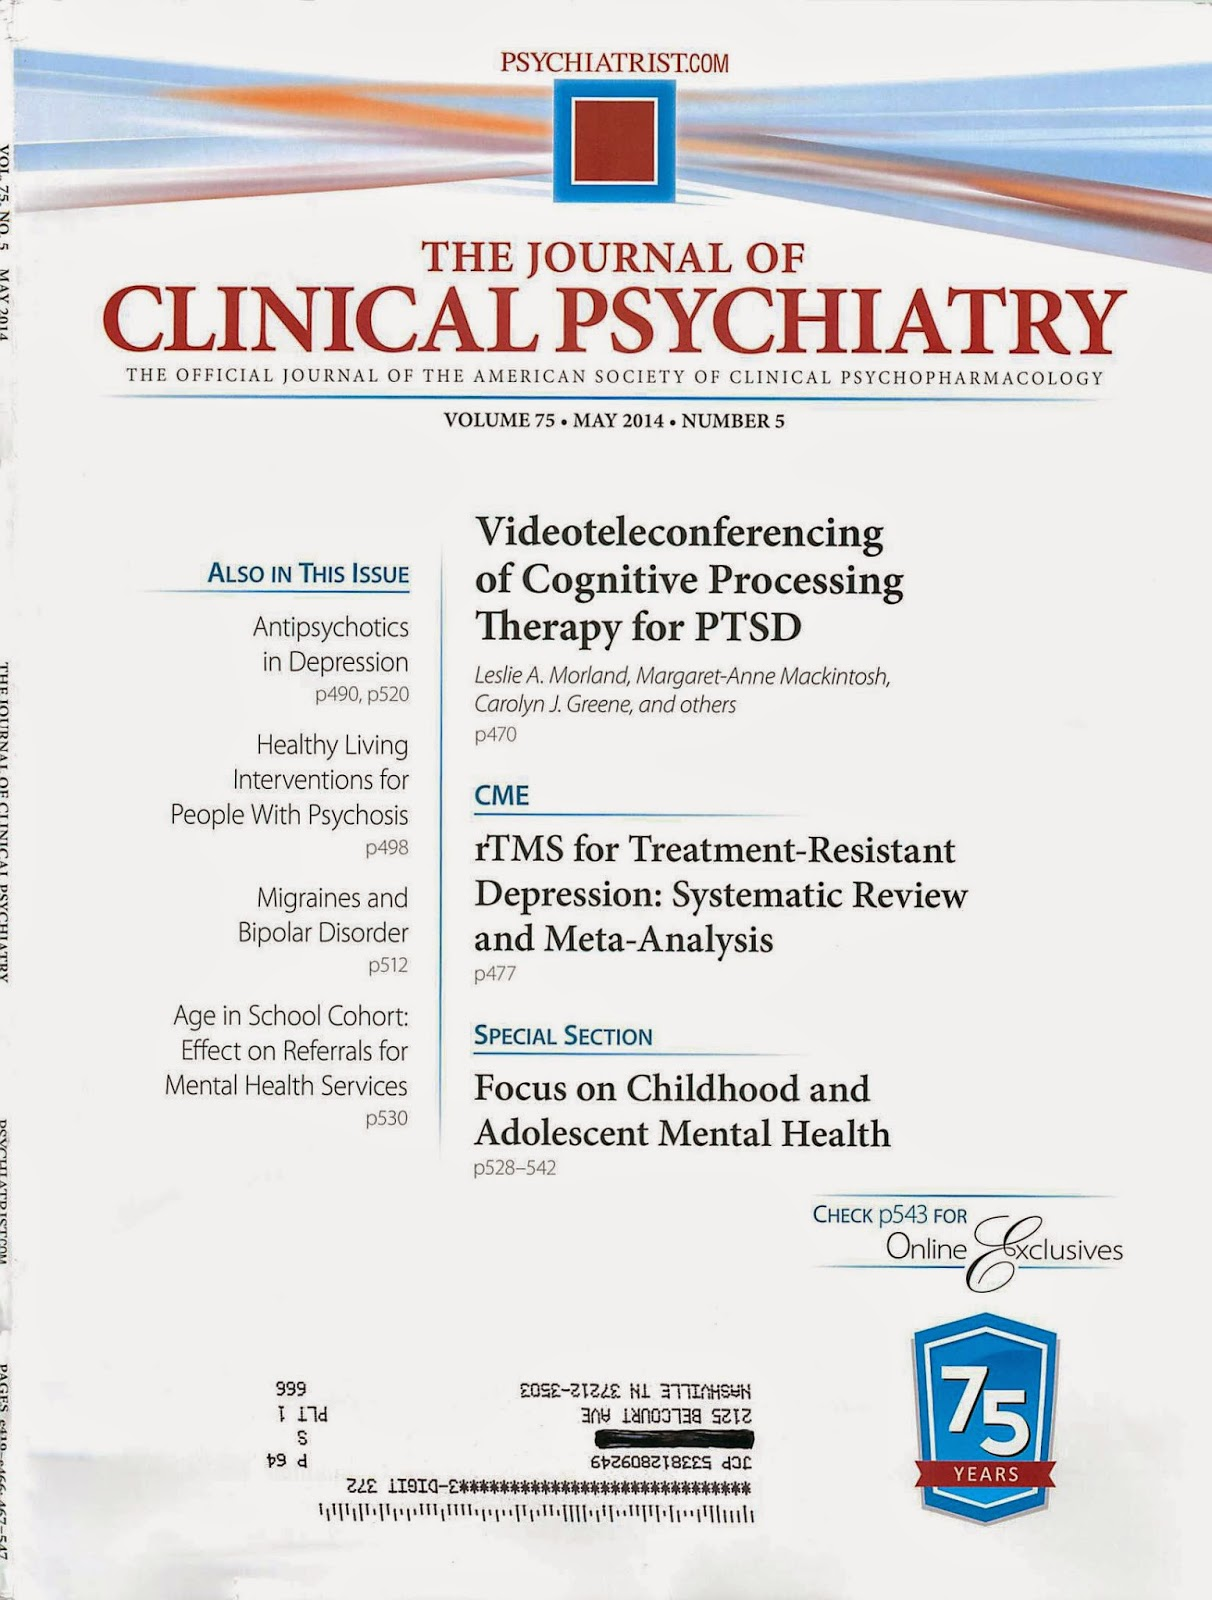 Transcranial Magnetic Stimulation Offers Hope for Treatment-Resistant Depression photo